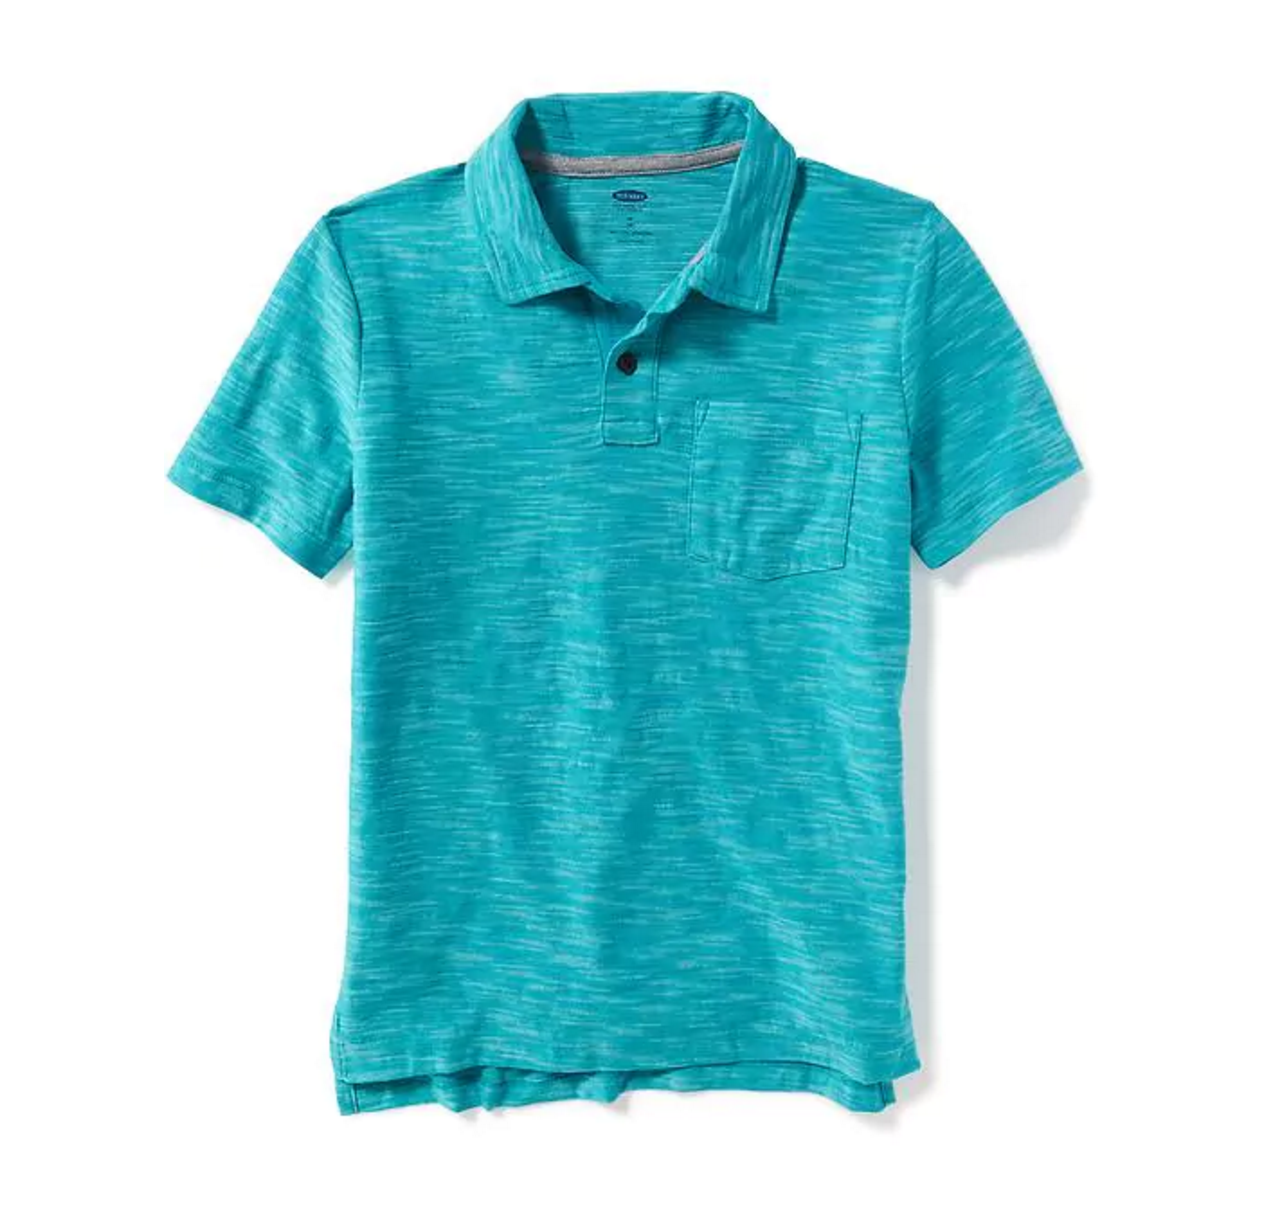 Tanger Outlets Old Navy Outlet boy's polo